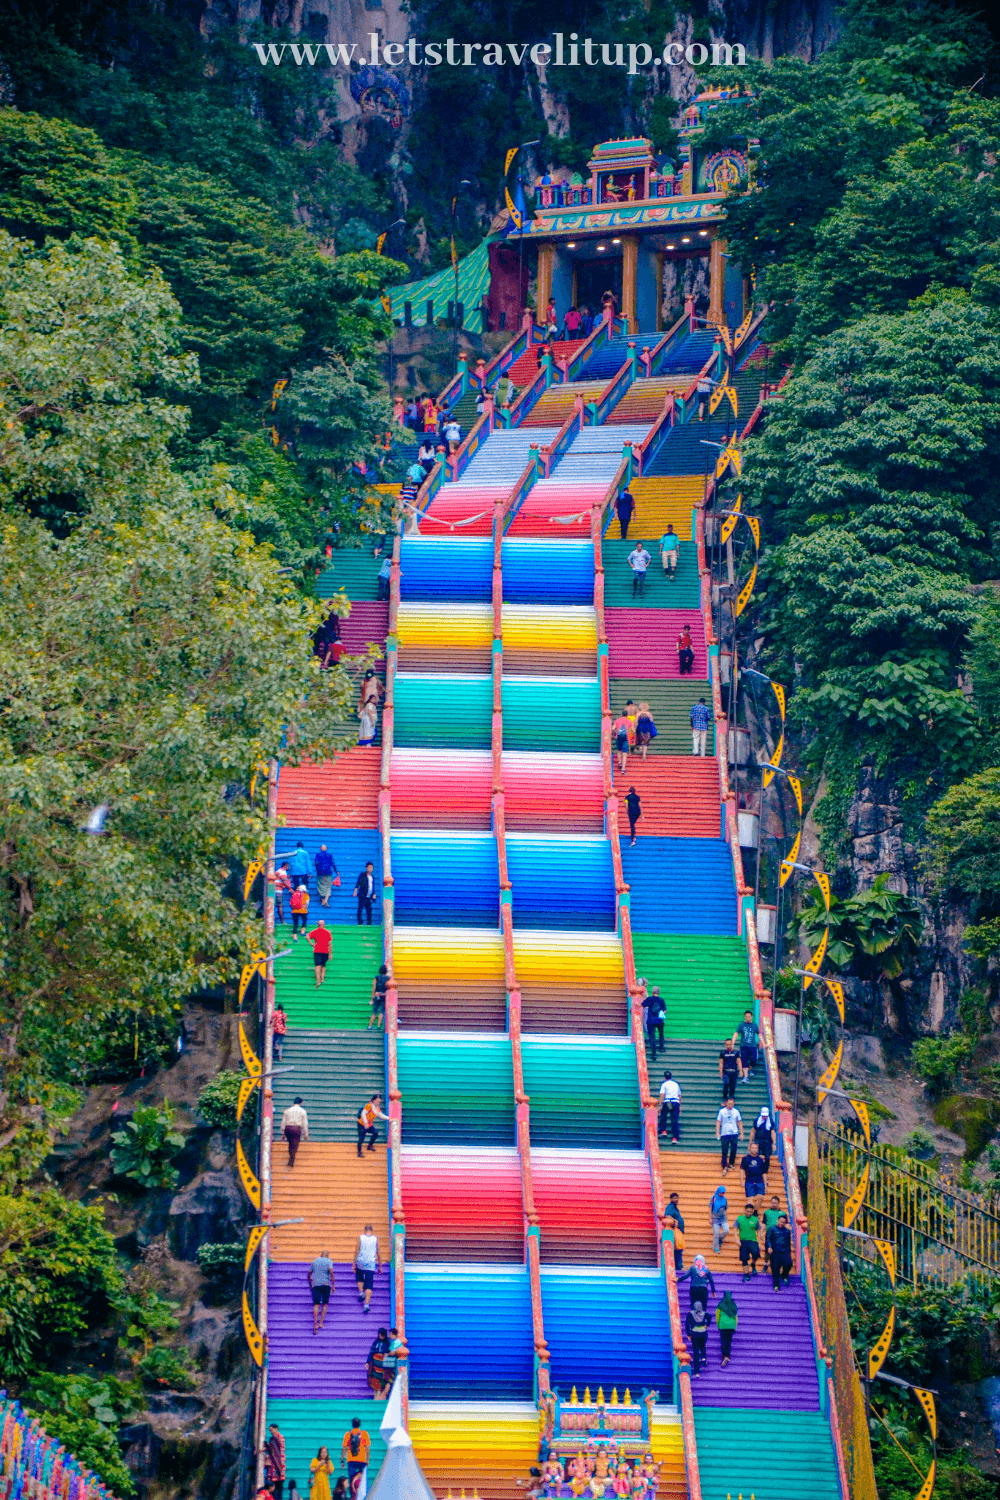 All of the colourful stairs from the Batu Caves are so beautiful and breathtaking.